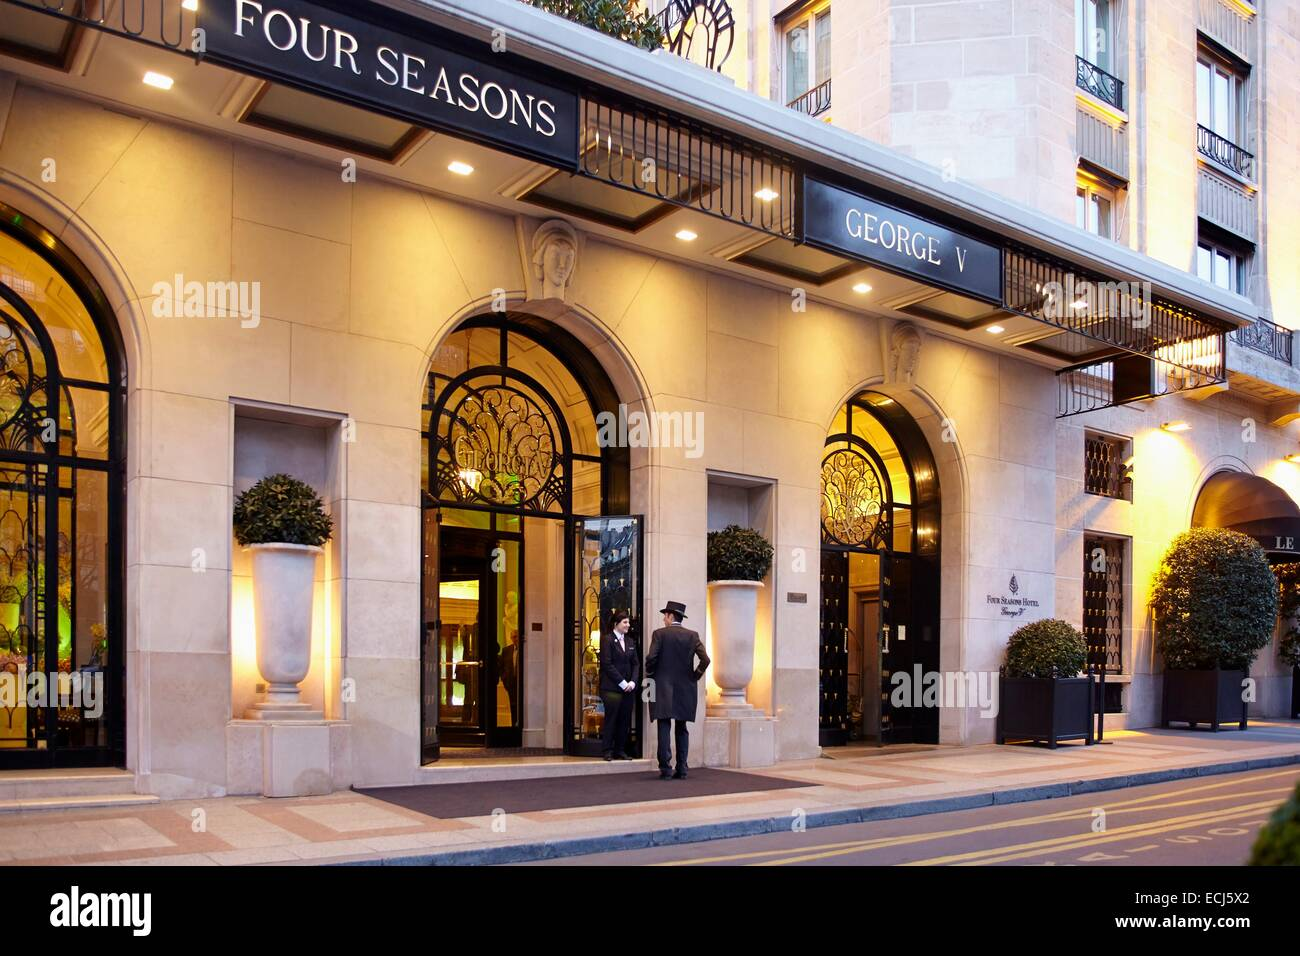 France, Paris, Georges V Avenue, Four Seasons Hotel George V Stock Photo